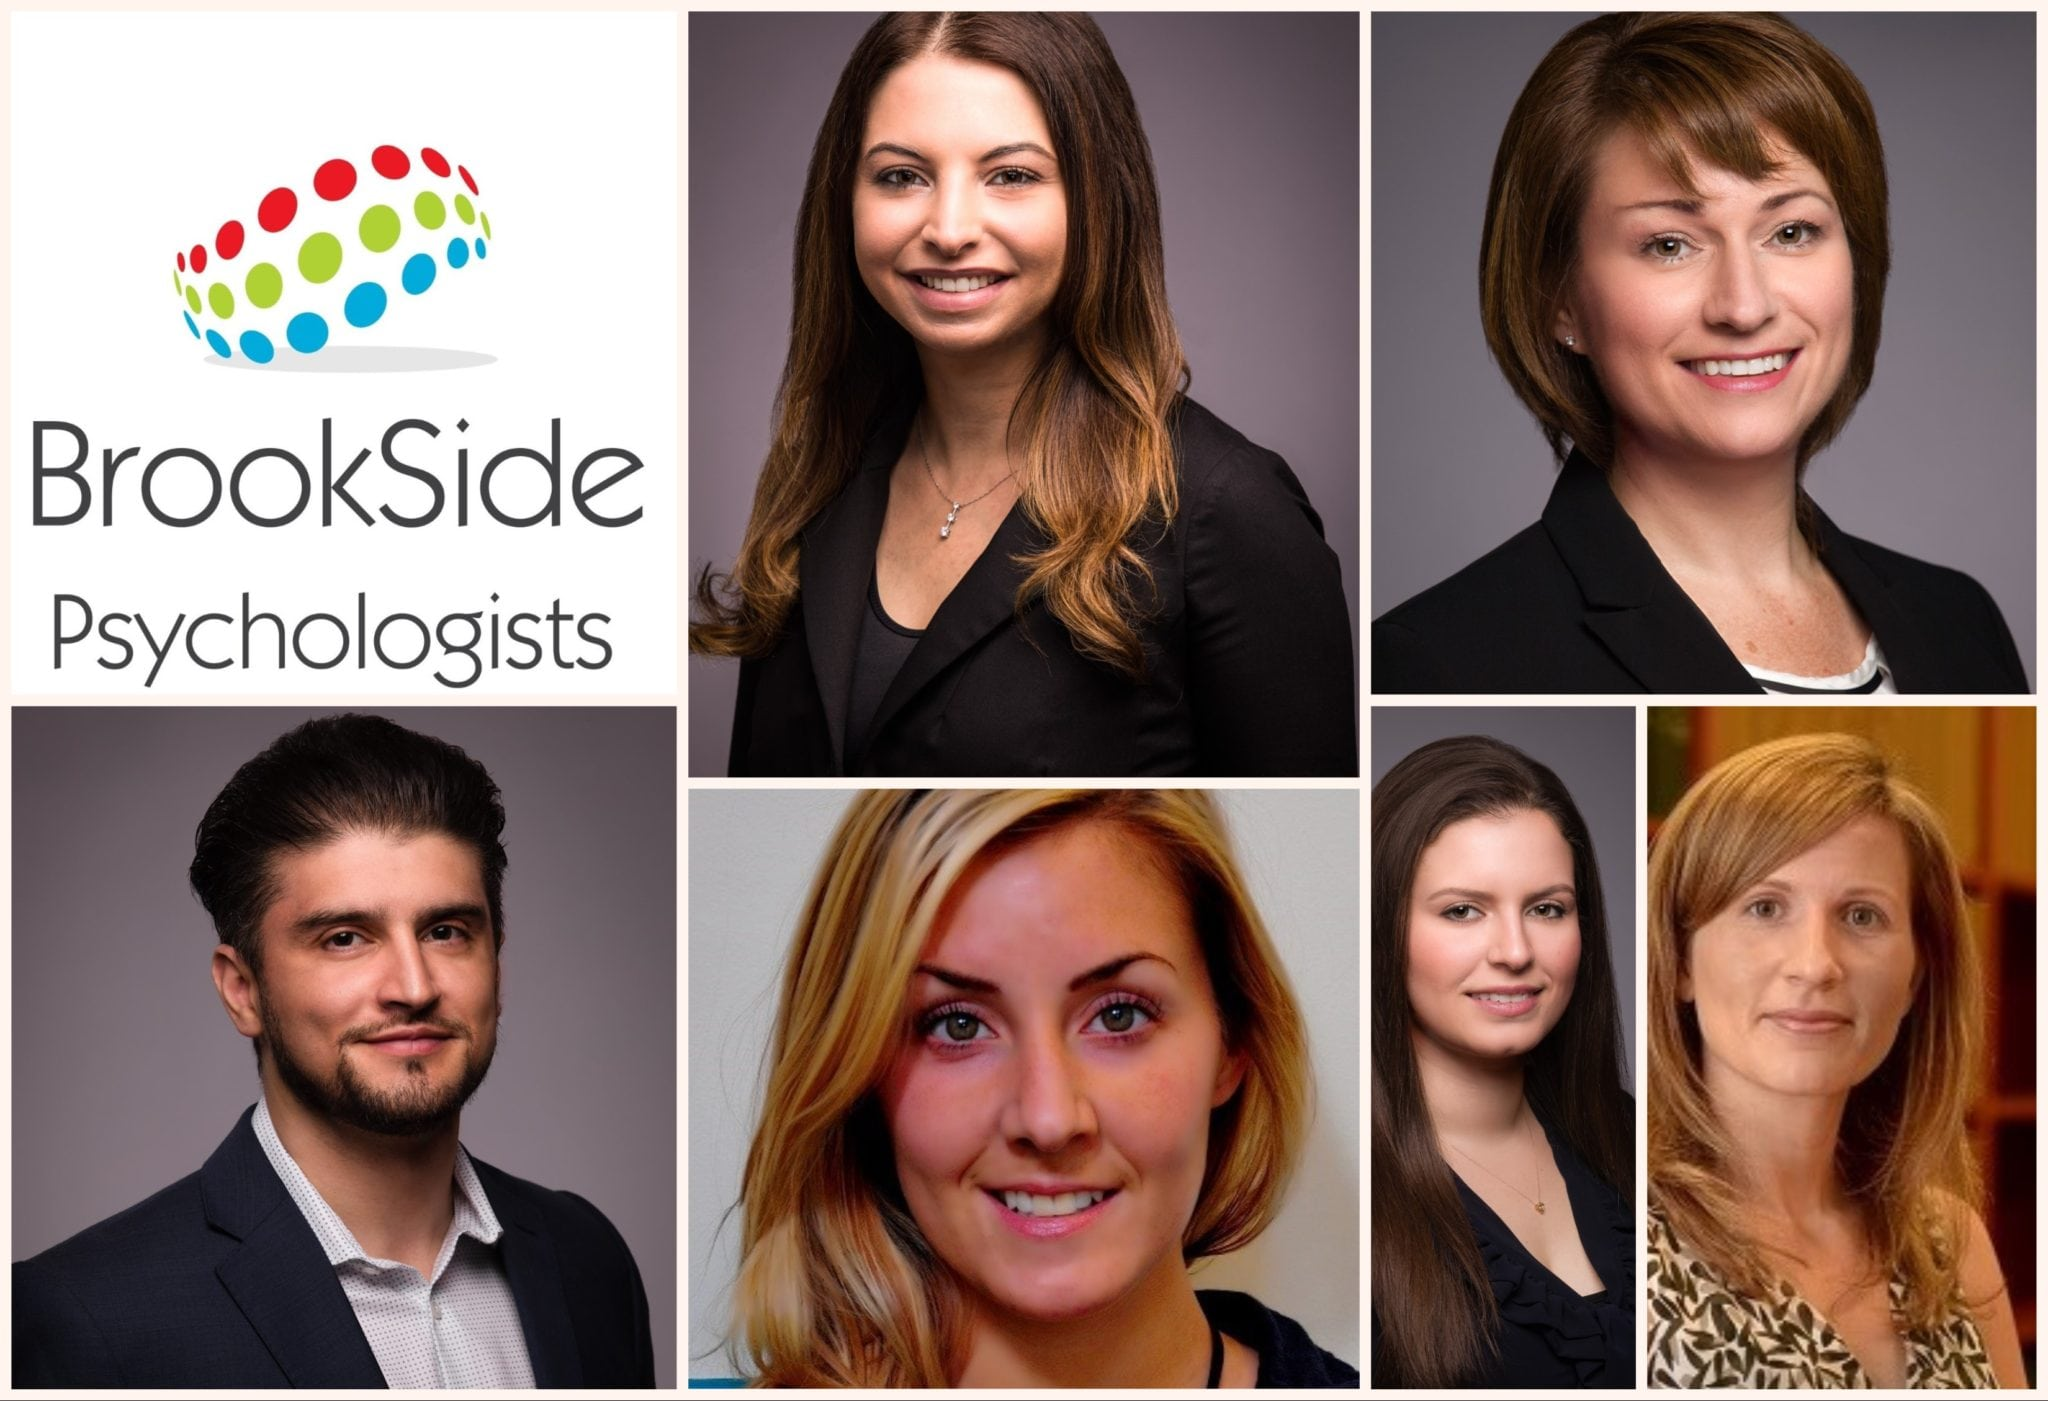 Our Staff at Brookside Psychologists